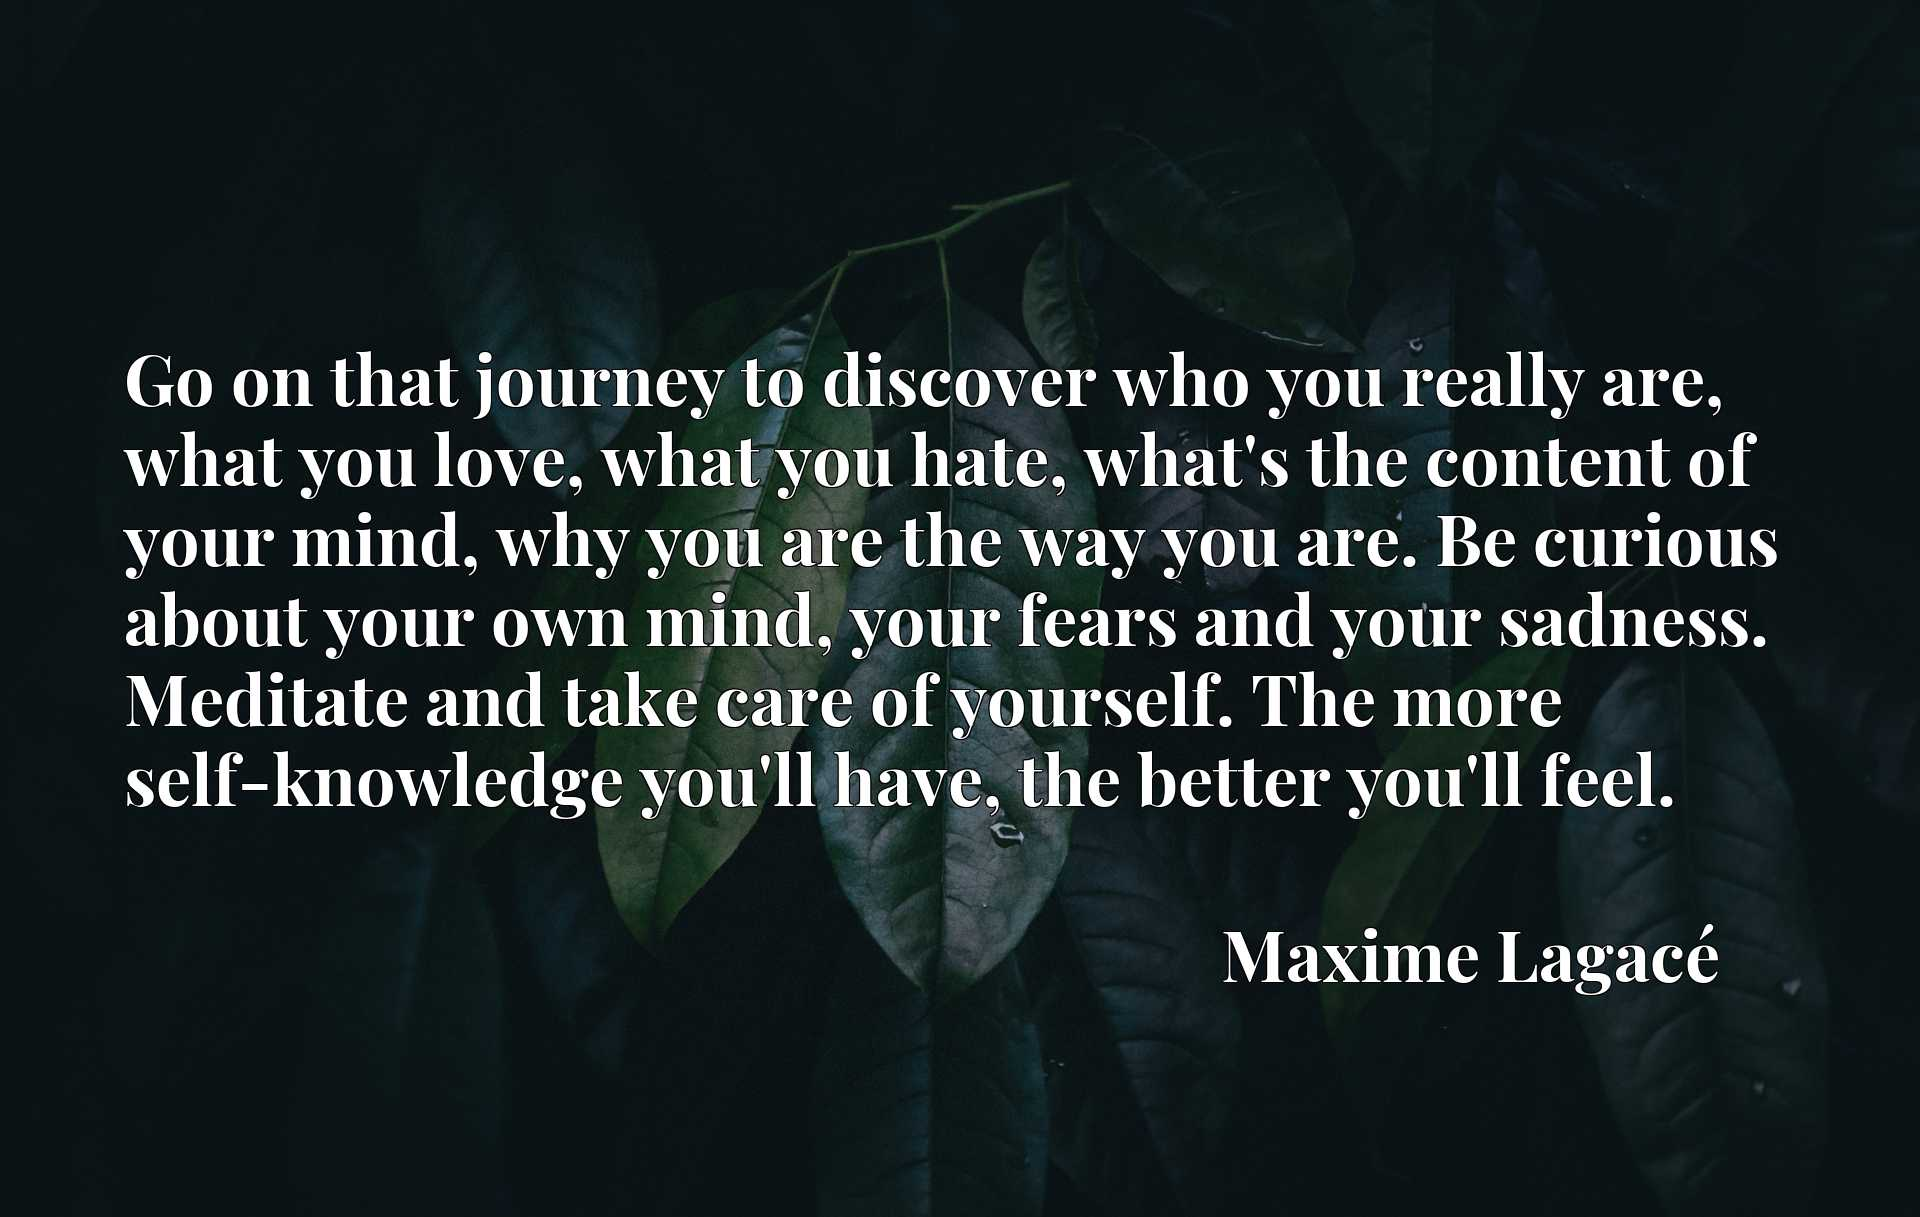 Go on that journey to discover who you really are, what you love, what you hate, what's the content of your mind, why you are the way you are. Be curious about your own mind, your fears and your sadness. Meditate and take care of yourself. The more self-knowledge you'll have, the better you'll feel.